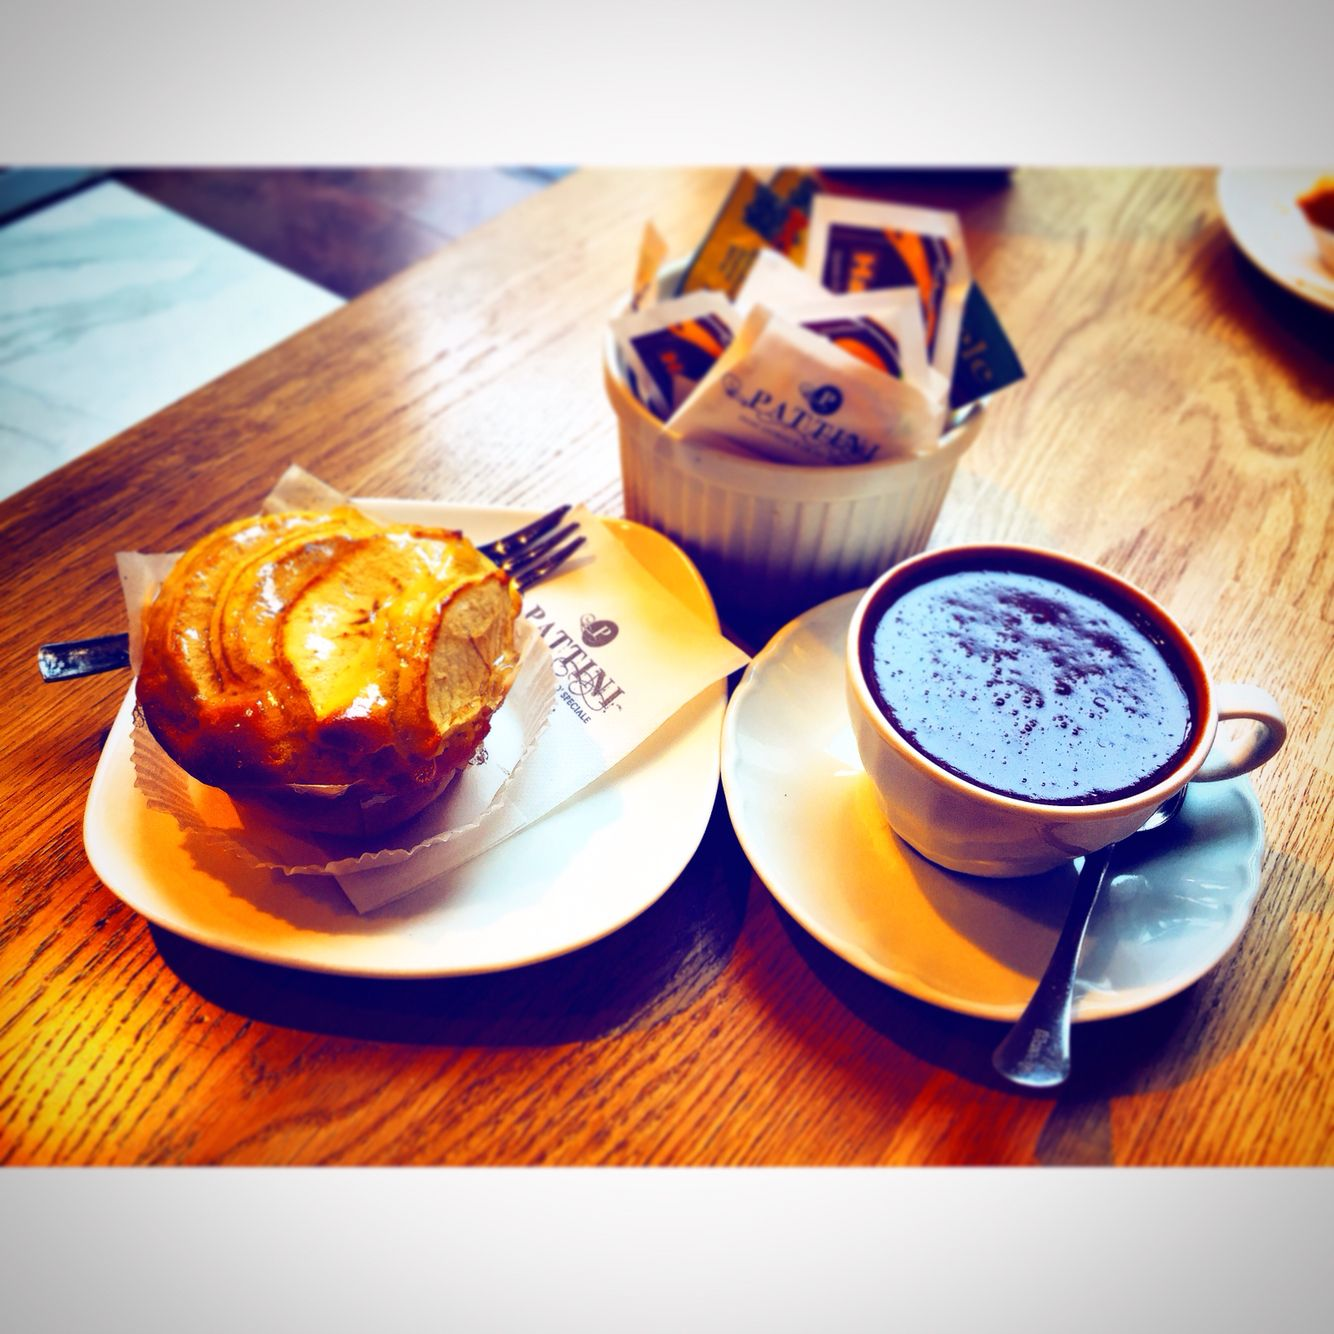 Today Nothing Diet ☕️ #Pattini #CorsoBuenosAires #muffin #apple #sugar #hot_chocolate #love #photo #iphone6 #followme #followers #good #eat #relax #diet #off #socialnetwork #pinterest #tumblr #twitter #instagram #facebook #swarm #foursquare #phonto #kiss